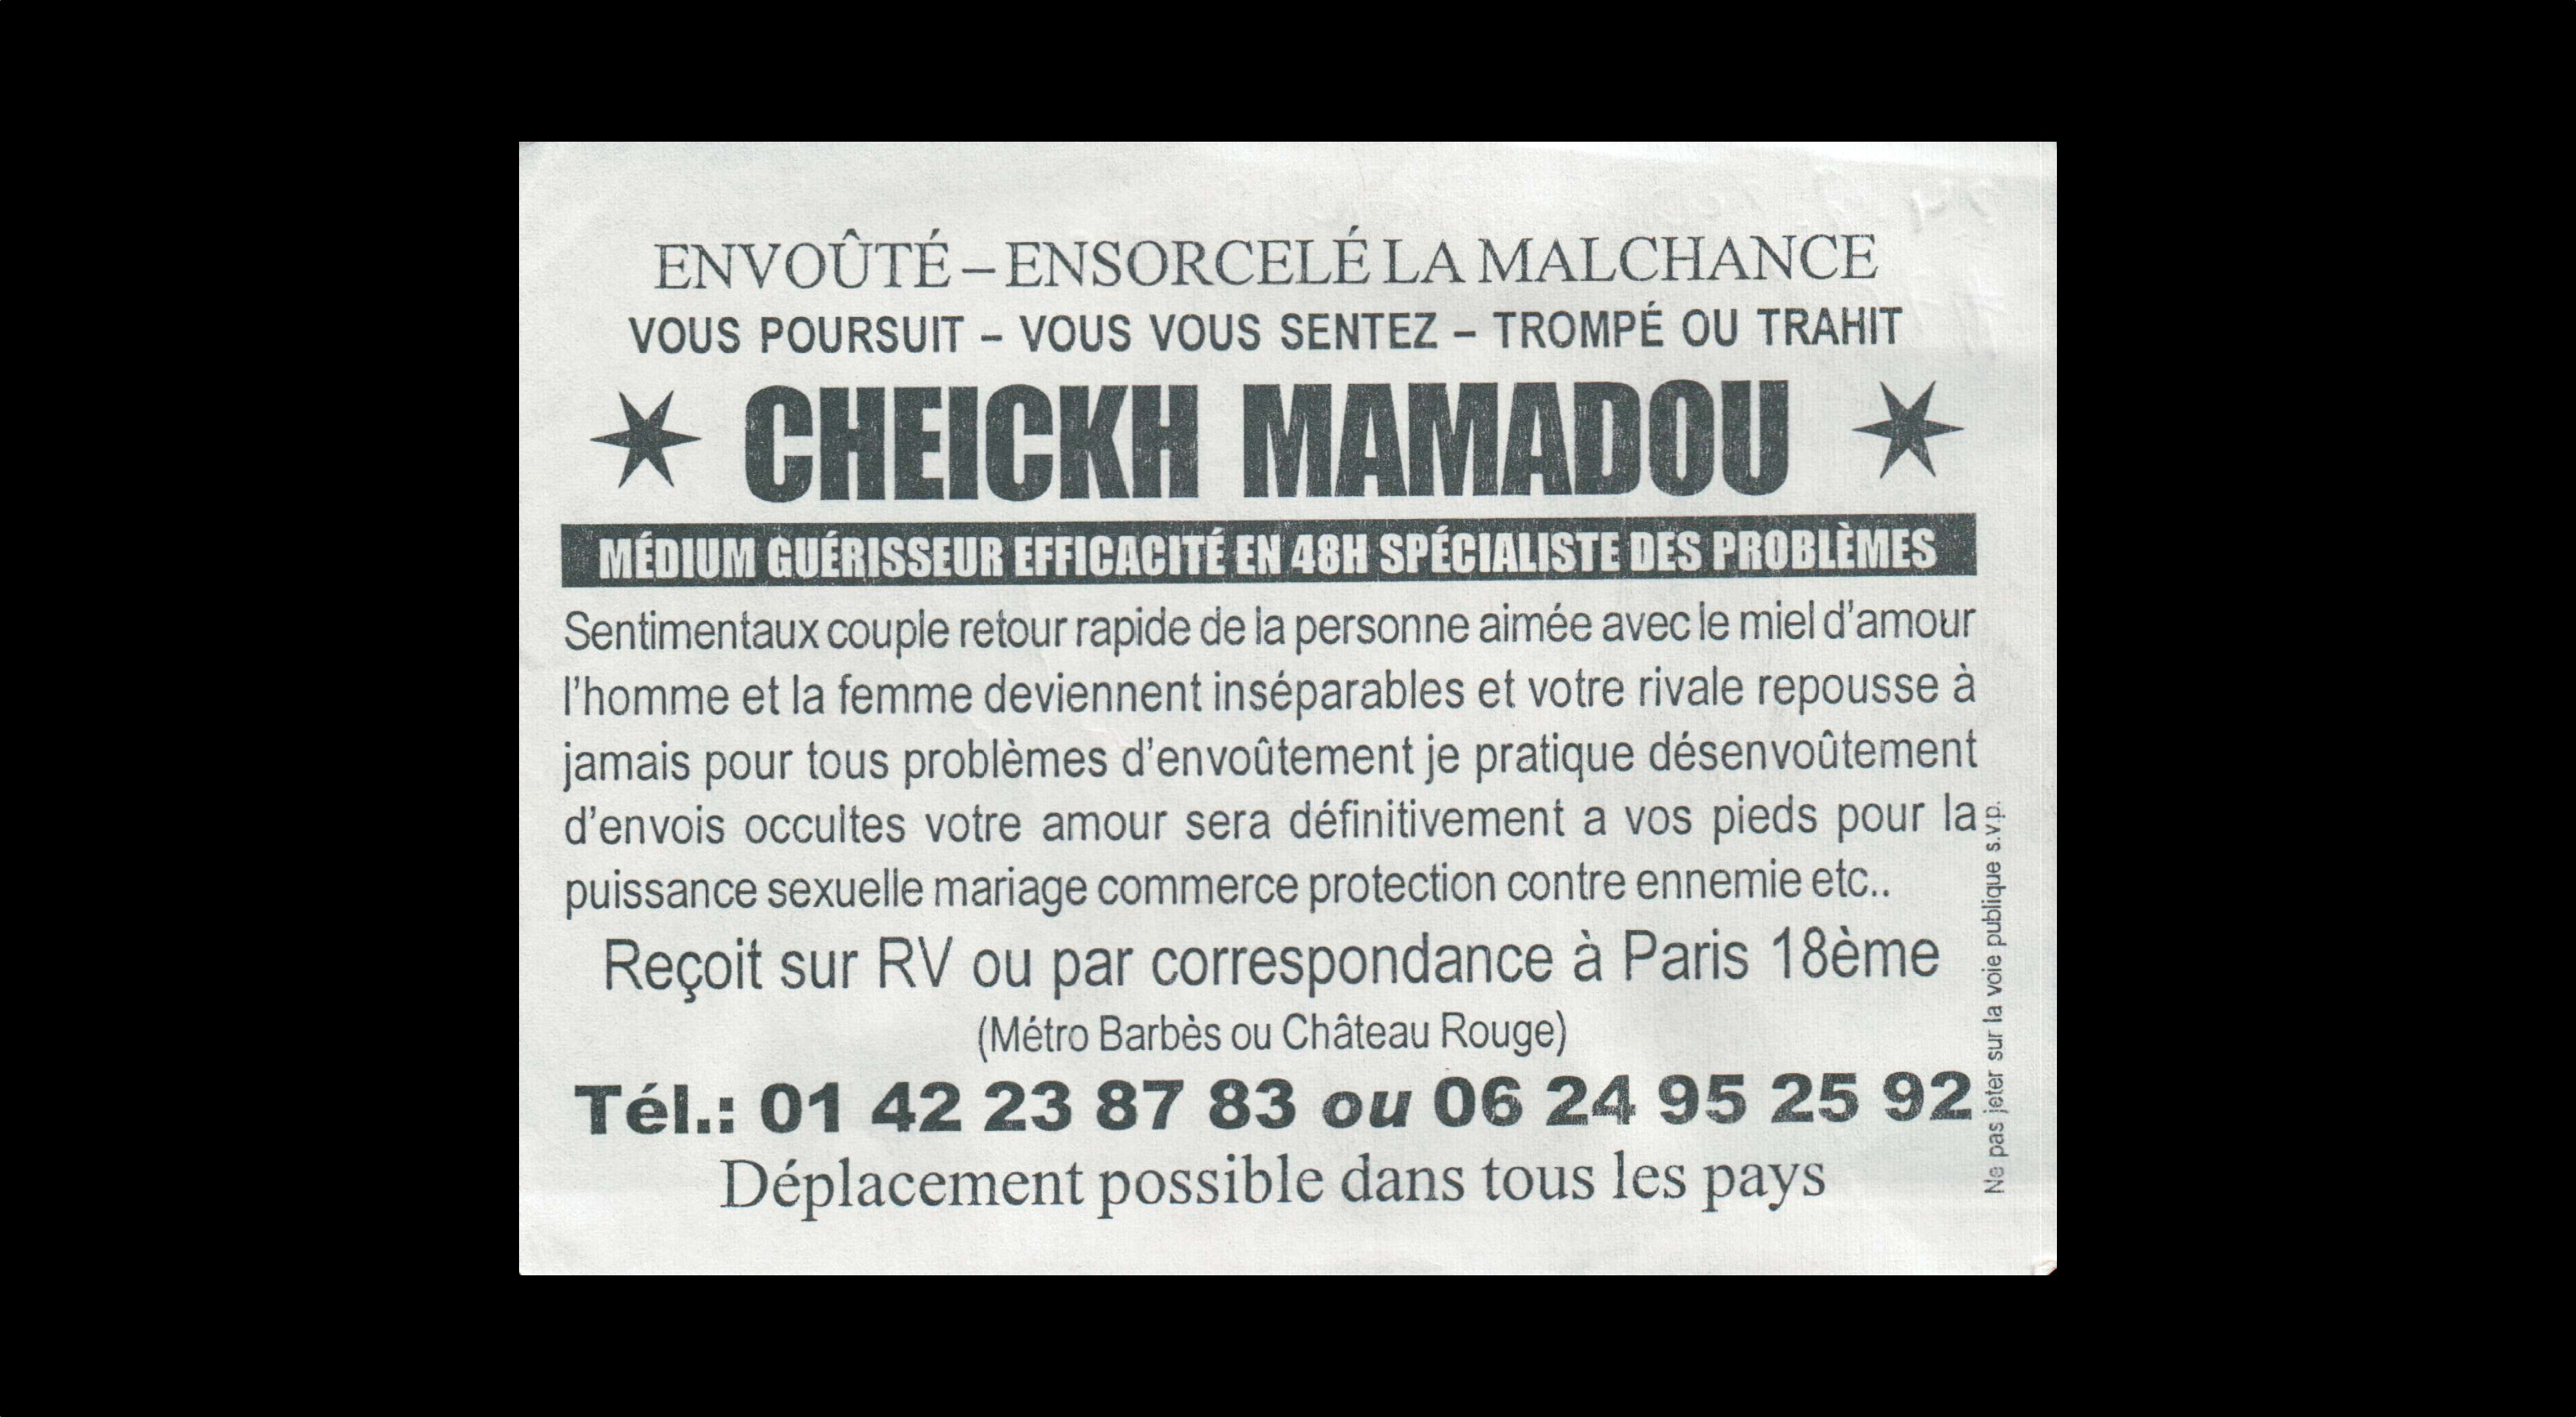 card of CHEICKH MAMADOU